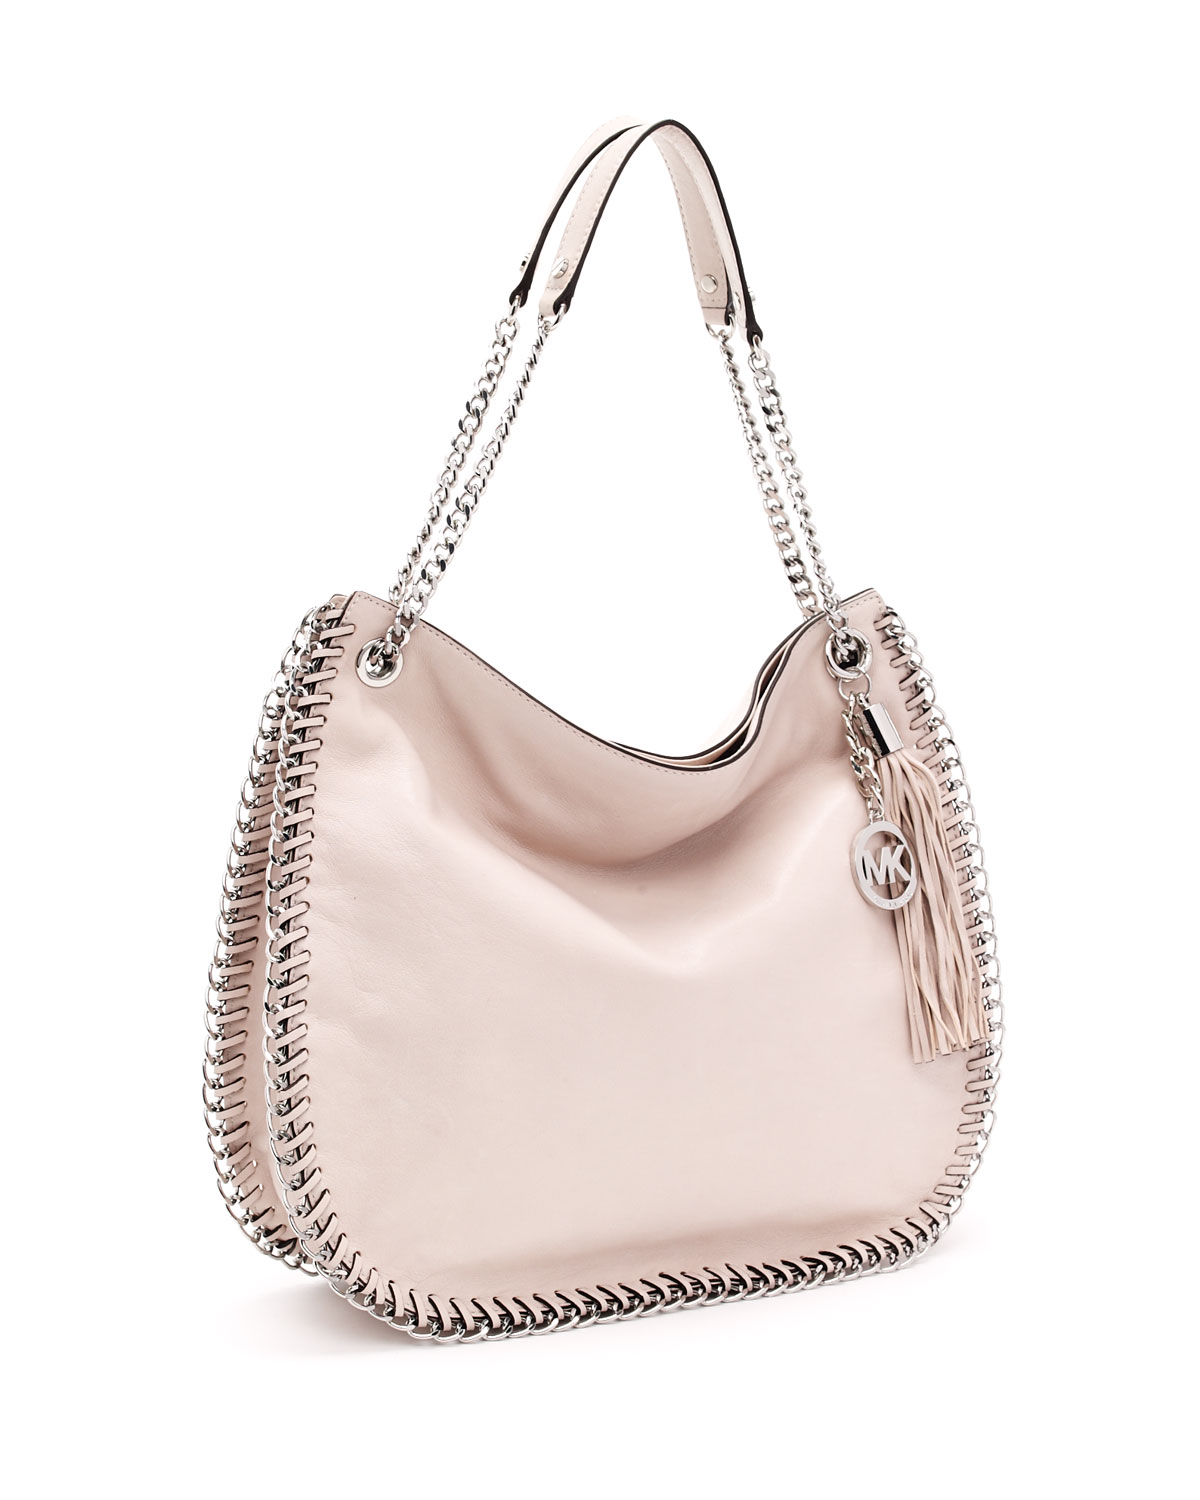 b18d1fbc92bf Michael Kors Large Chelsea Shoulder Bag, Vanilla in Pink - Lyst